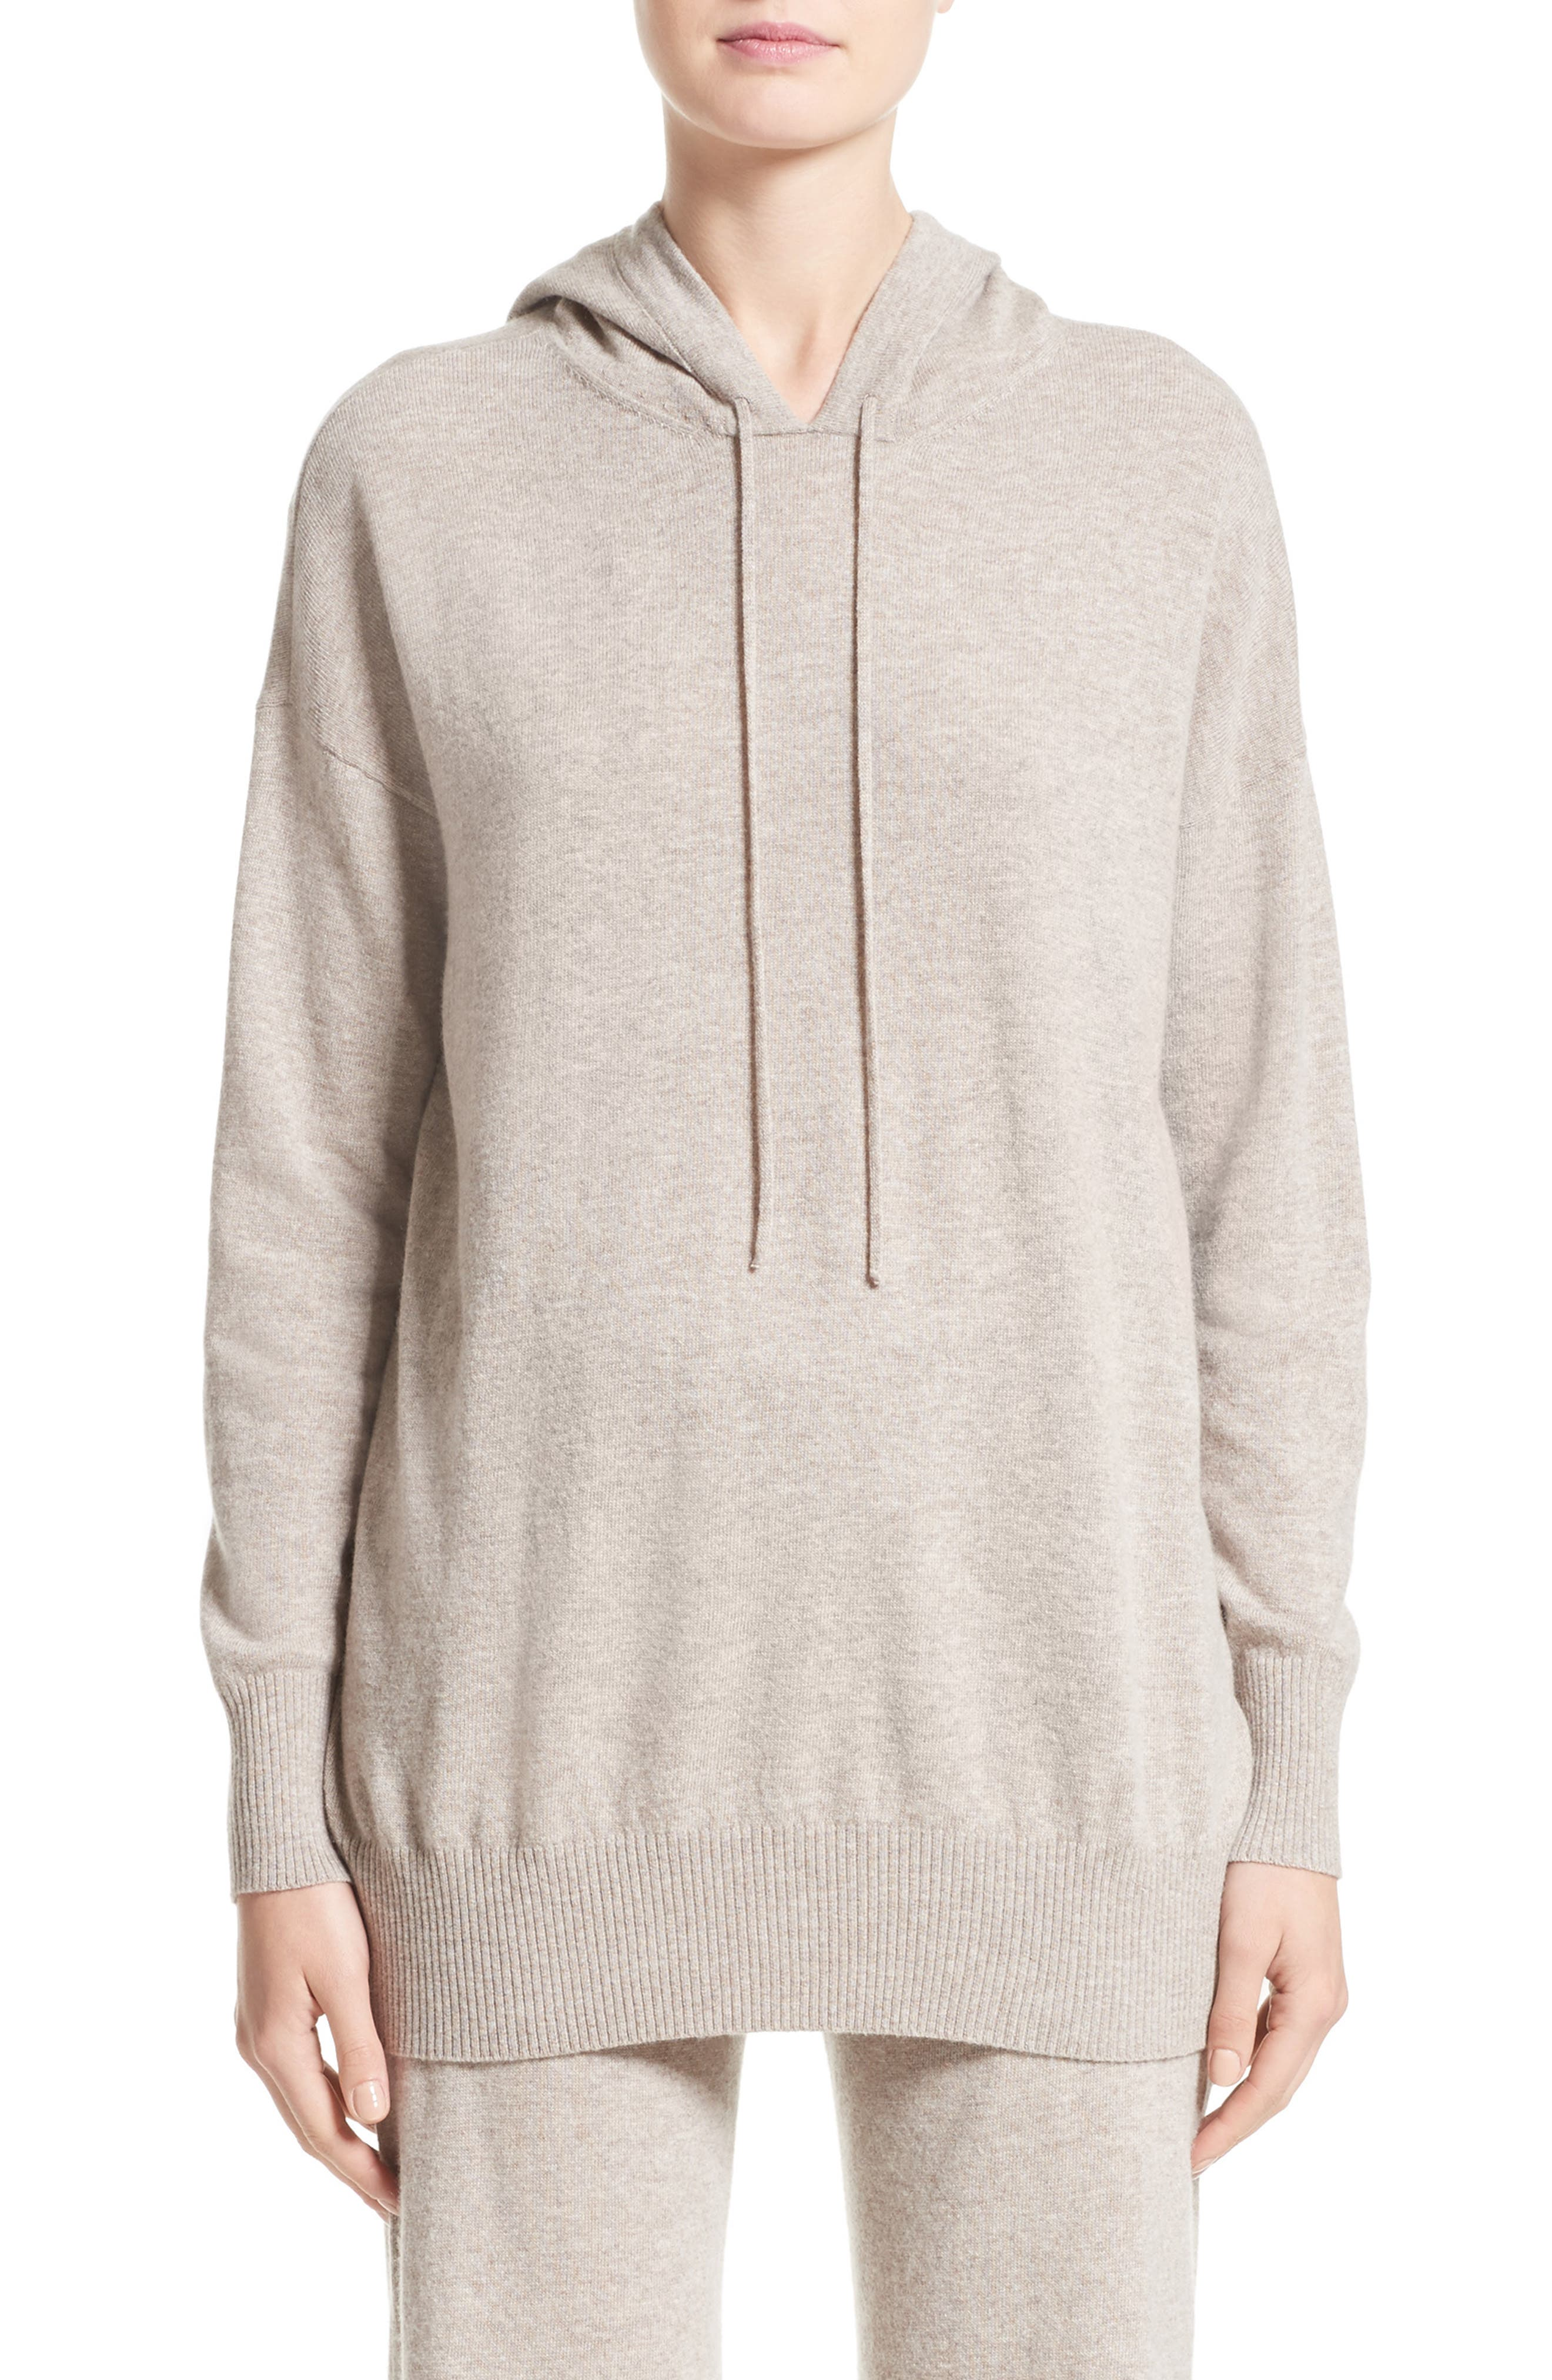 Alternate Image 1 Selected - Max Mara Nitra Wool & Cashmere Hooded Sweater